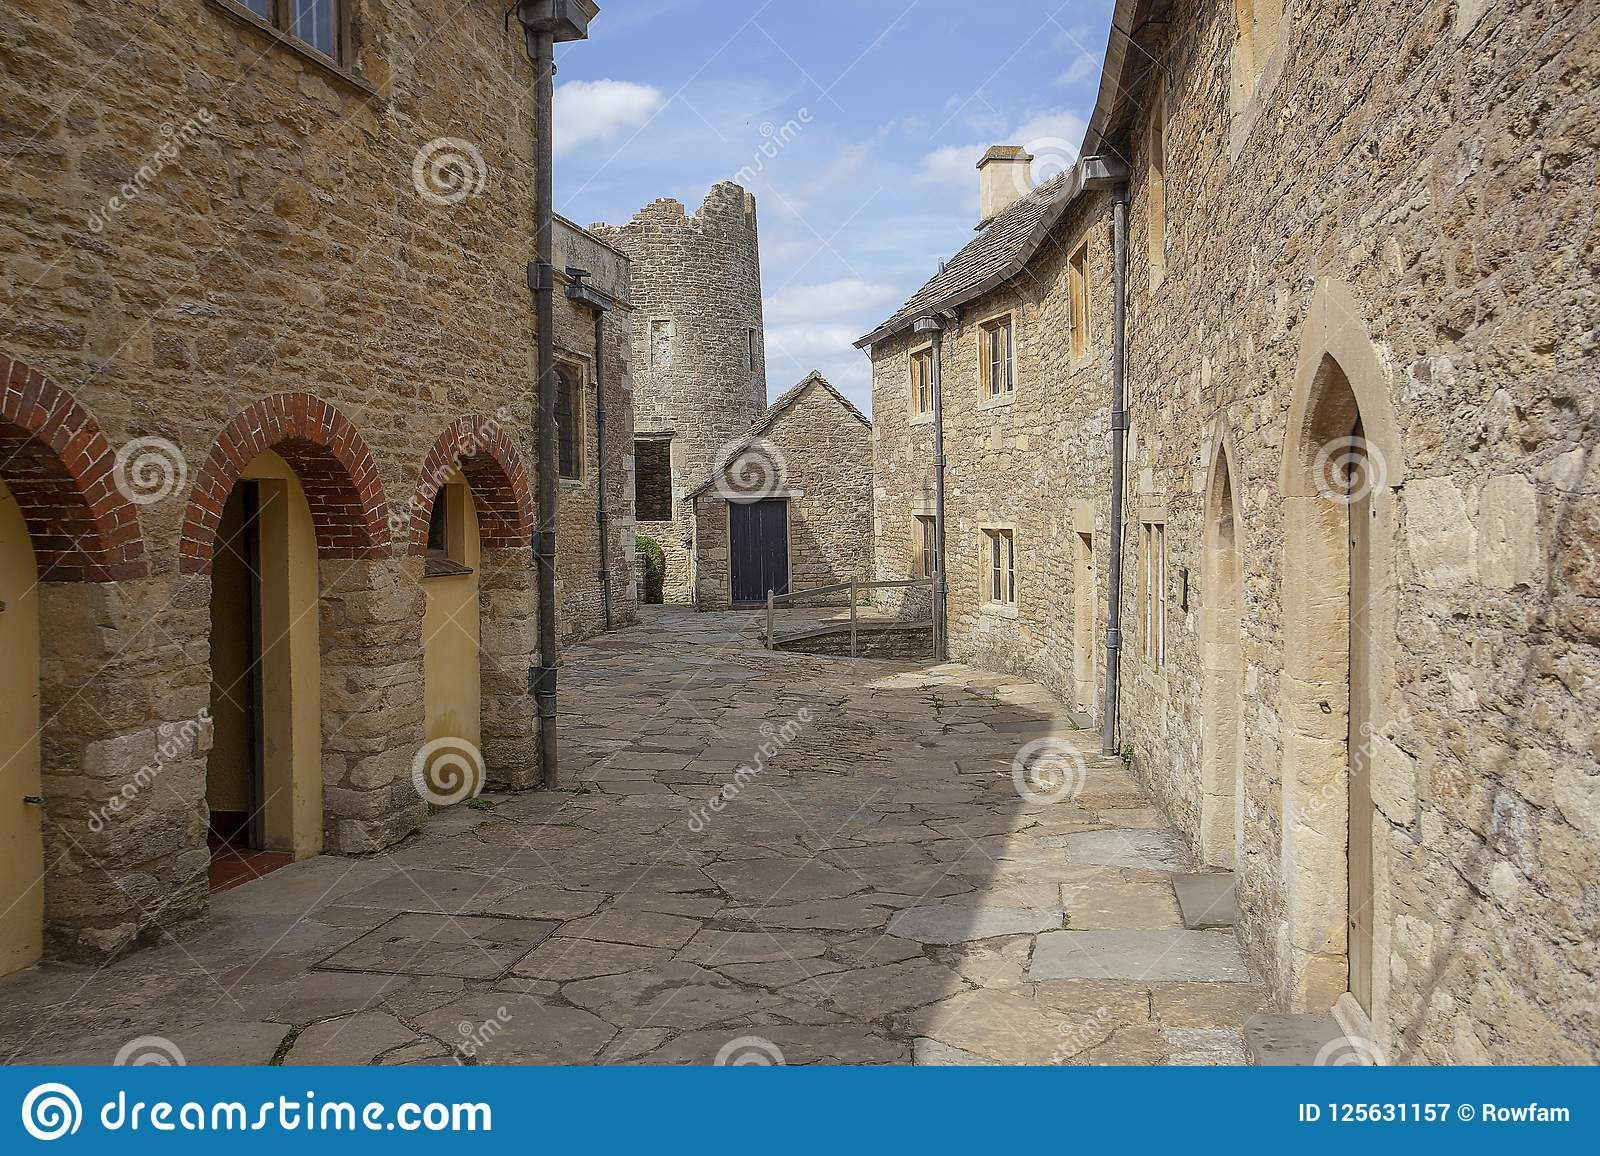 Farleigh Hungerford Castle, Street near priests house